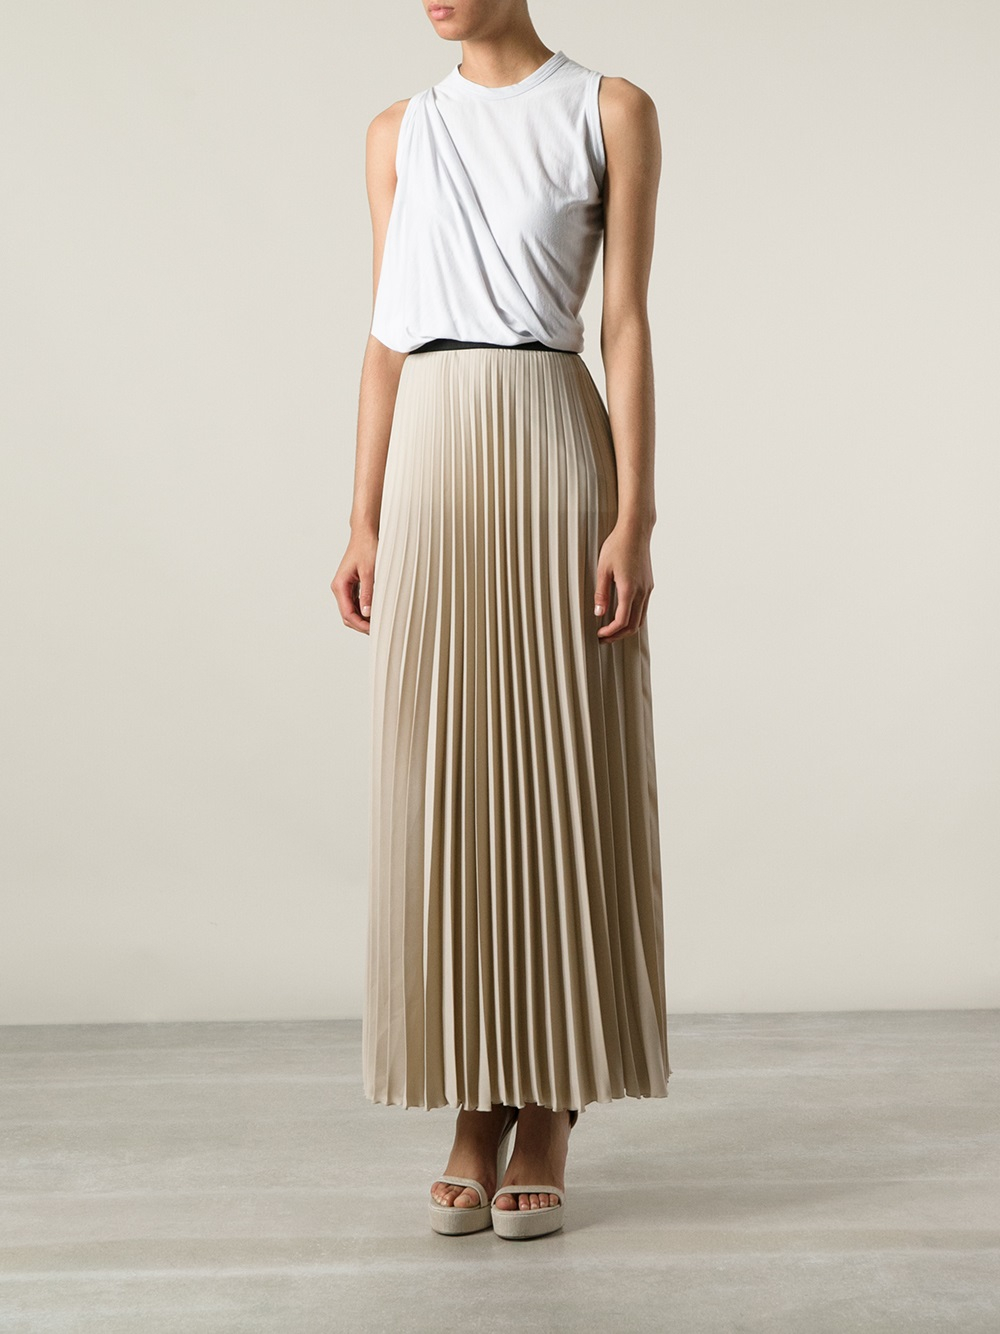 P.a.r.o.s.h. Long Pleated Skirt in Natural | Lyst